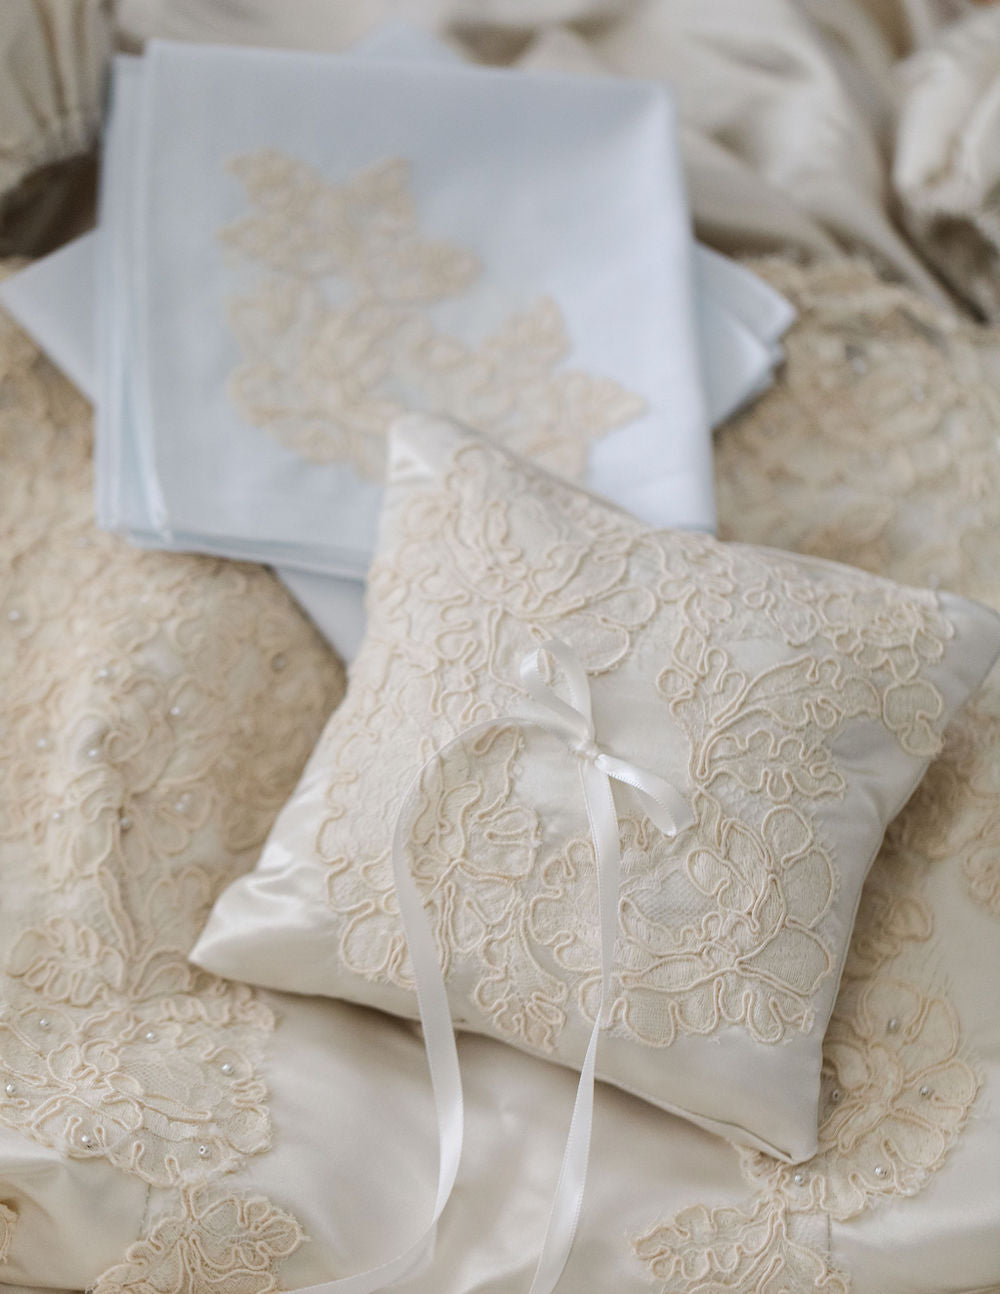 custom wedding garter heirloom and ring pillow made from grandmother's wedding dress by The Garter Girl